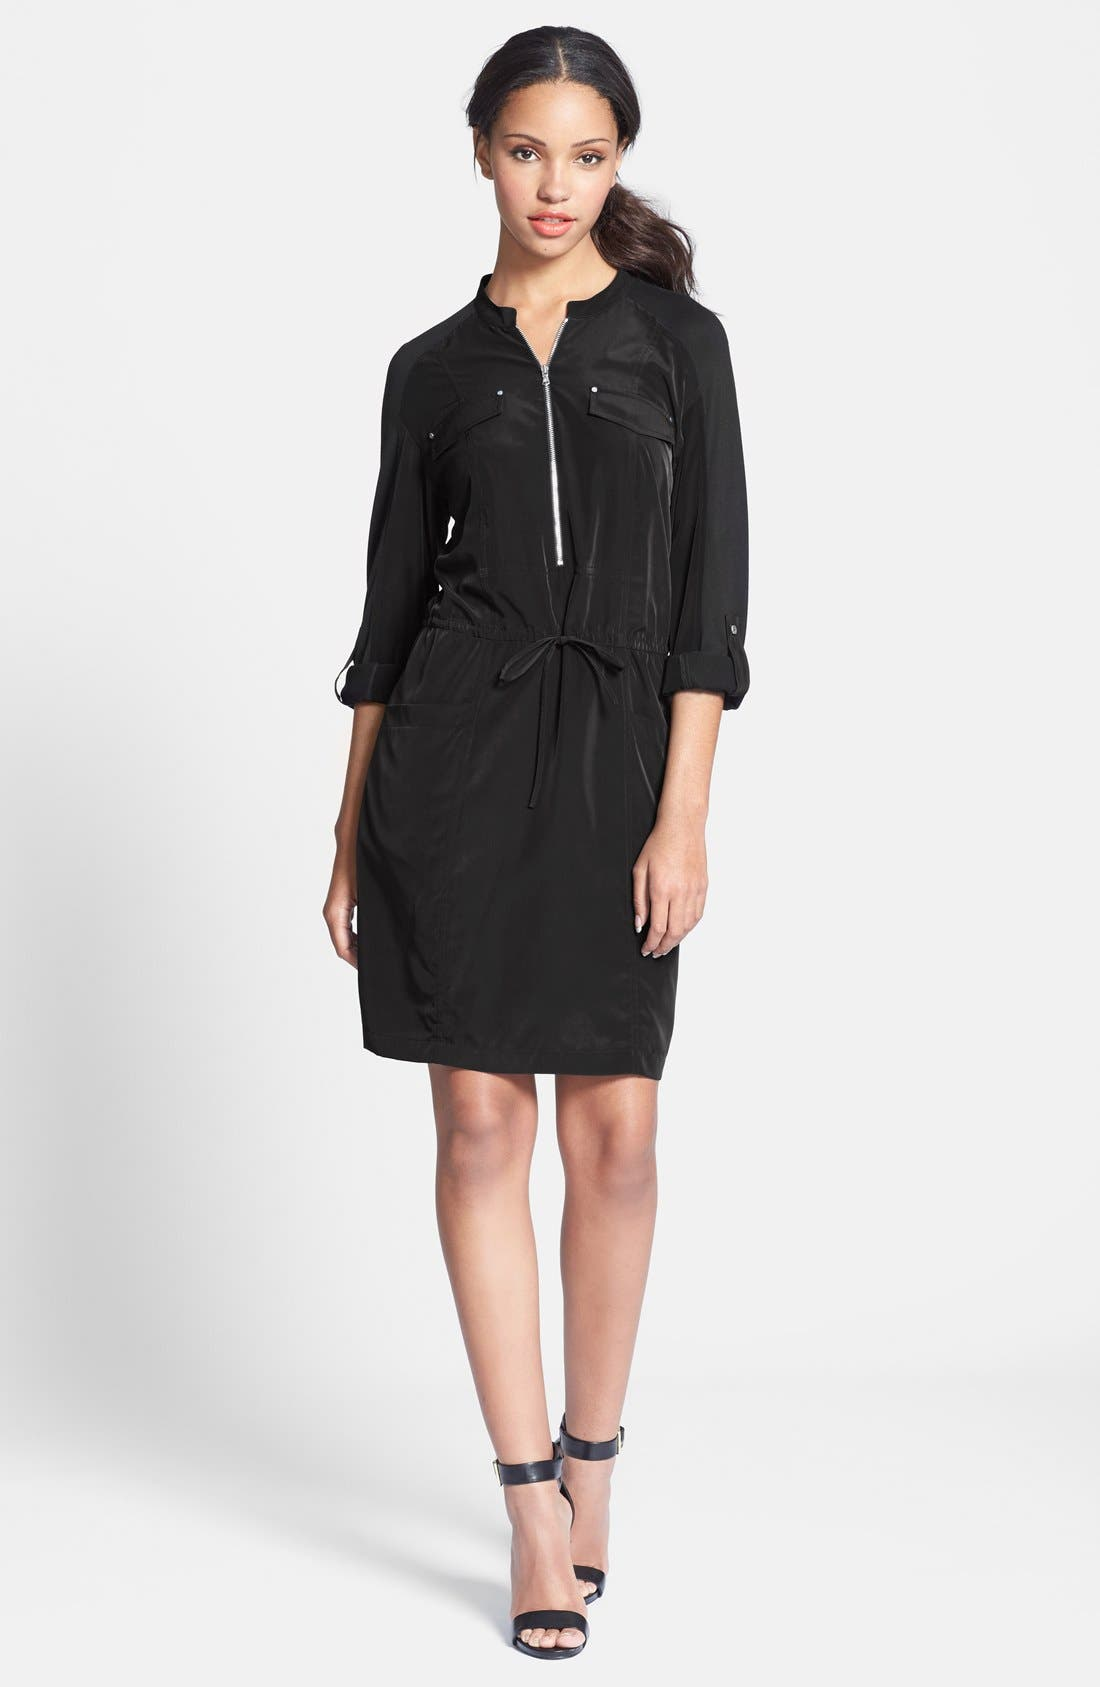 Alternate Image 1 Selected - Kenneth Cole New York 'Cheryl' Dress (Petite)